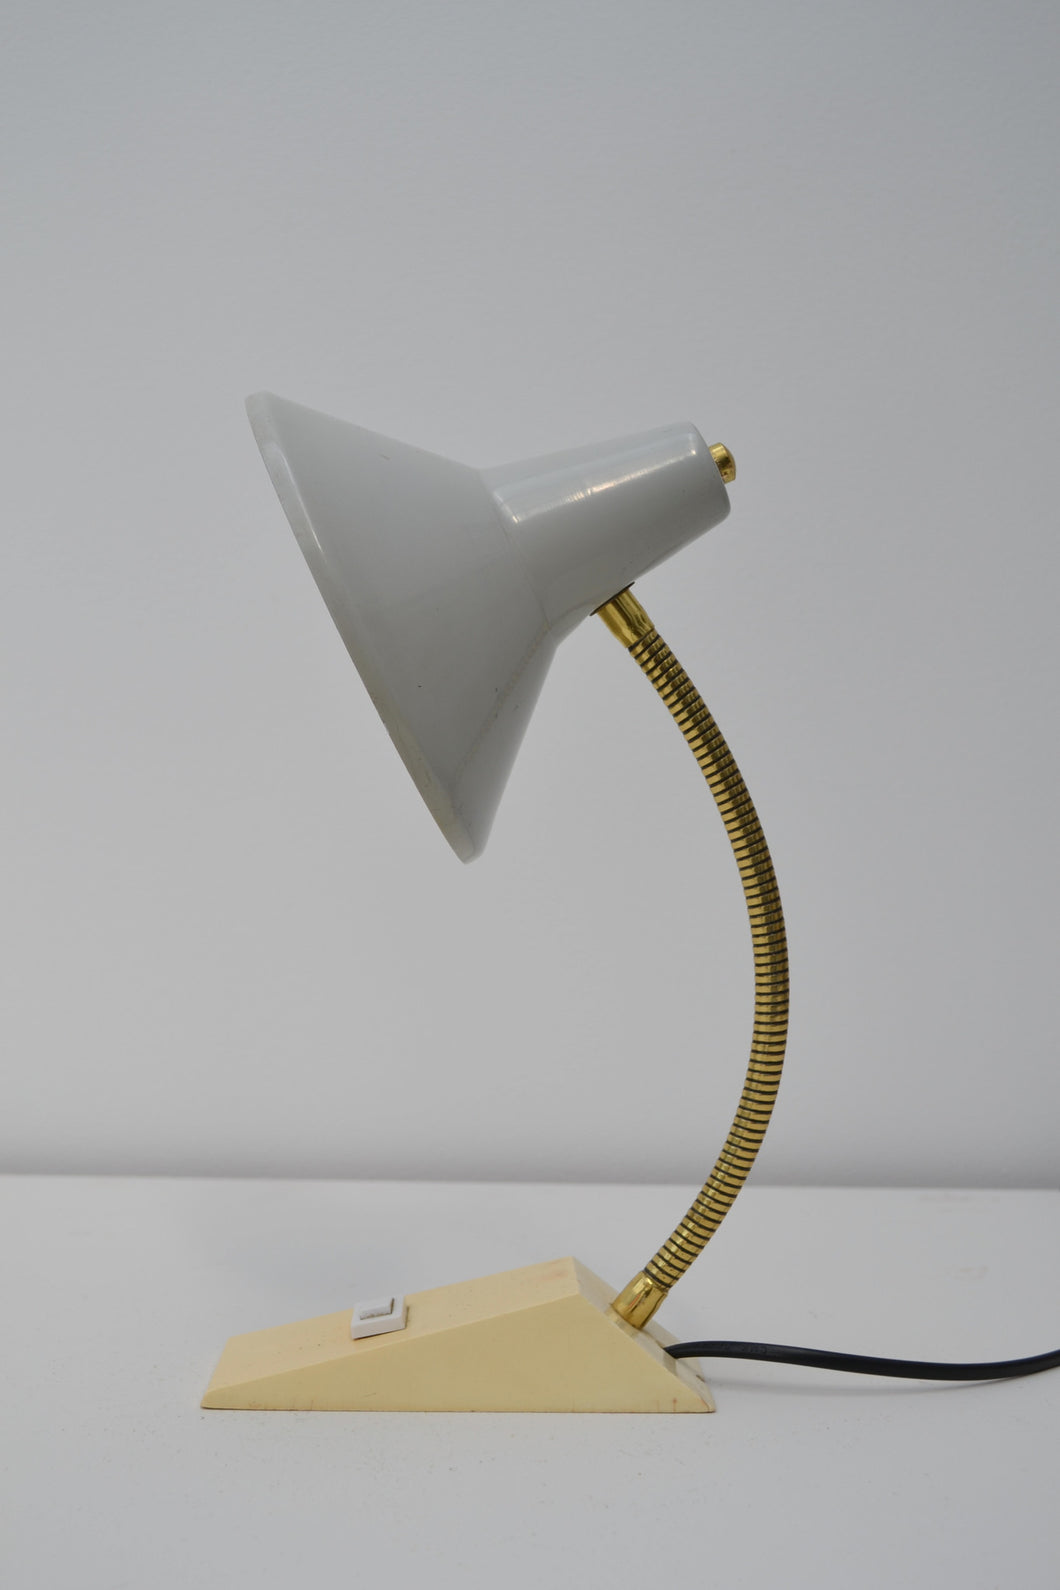 Vintage Desk Lamp By Stilnovo - Italian Mid Century Modern - SOLD